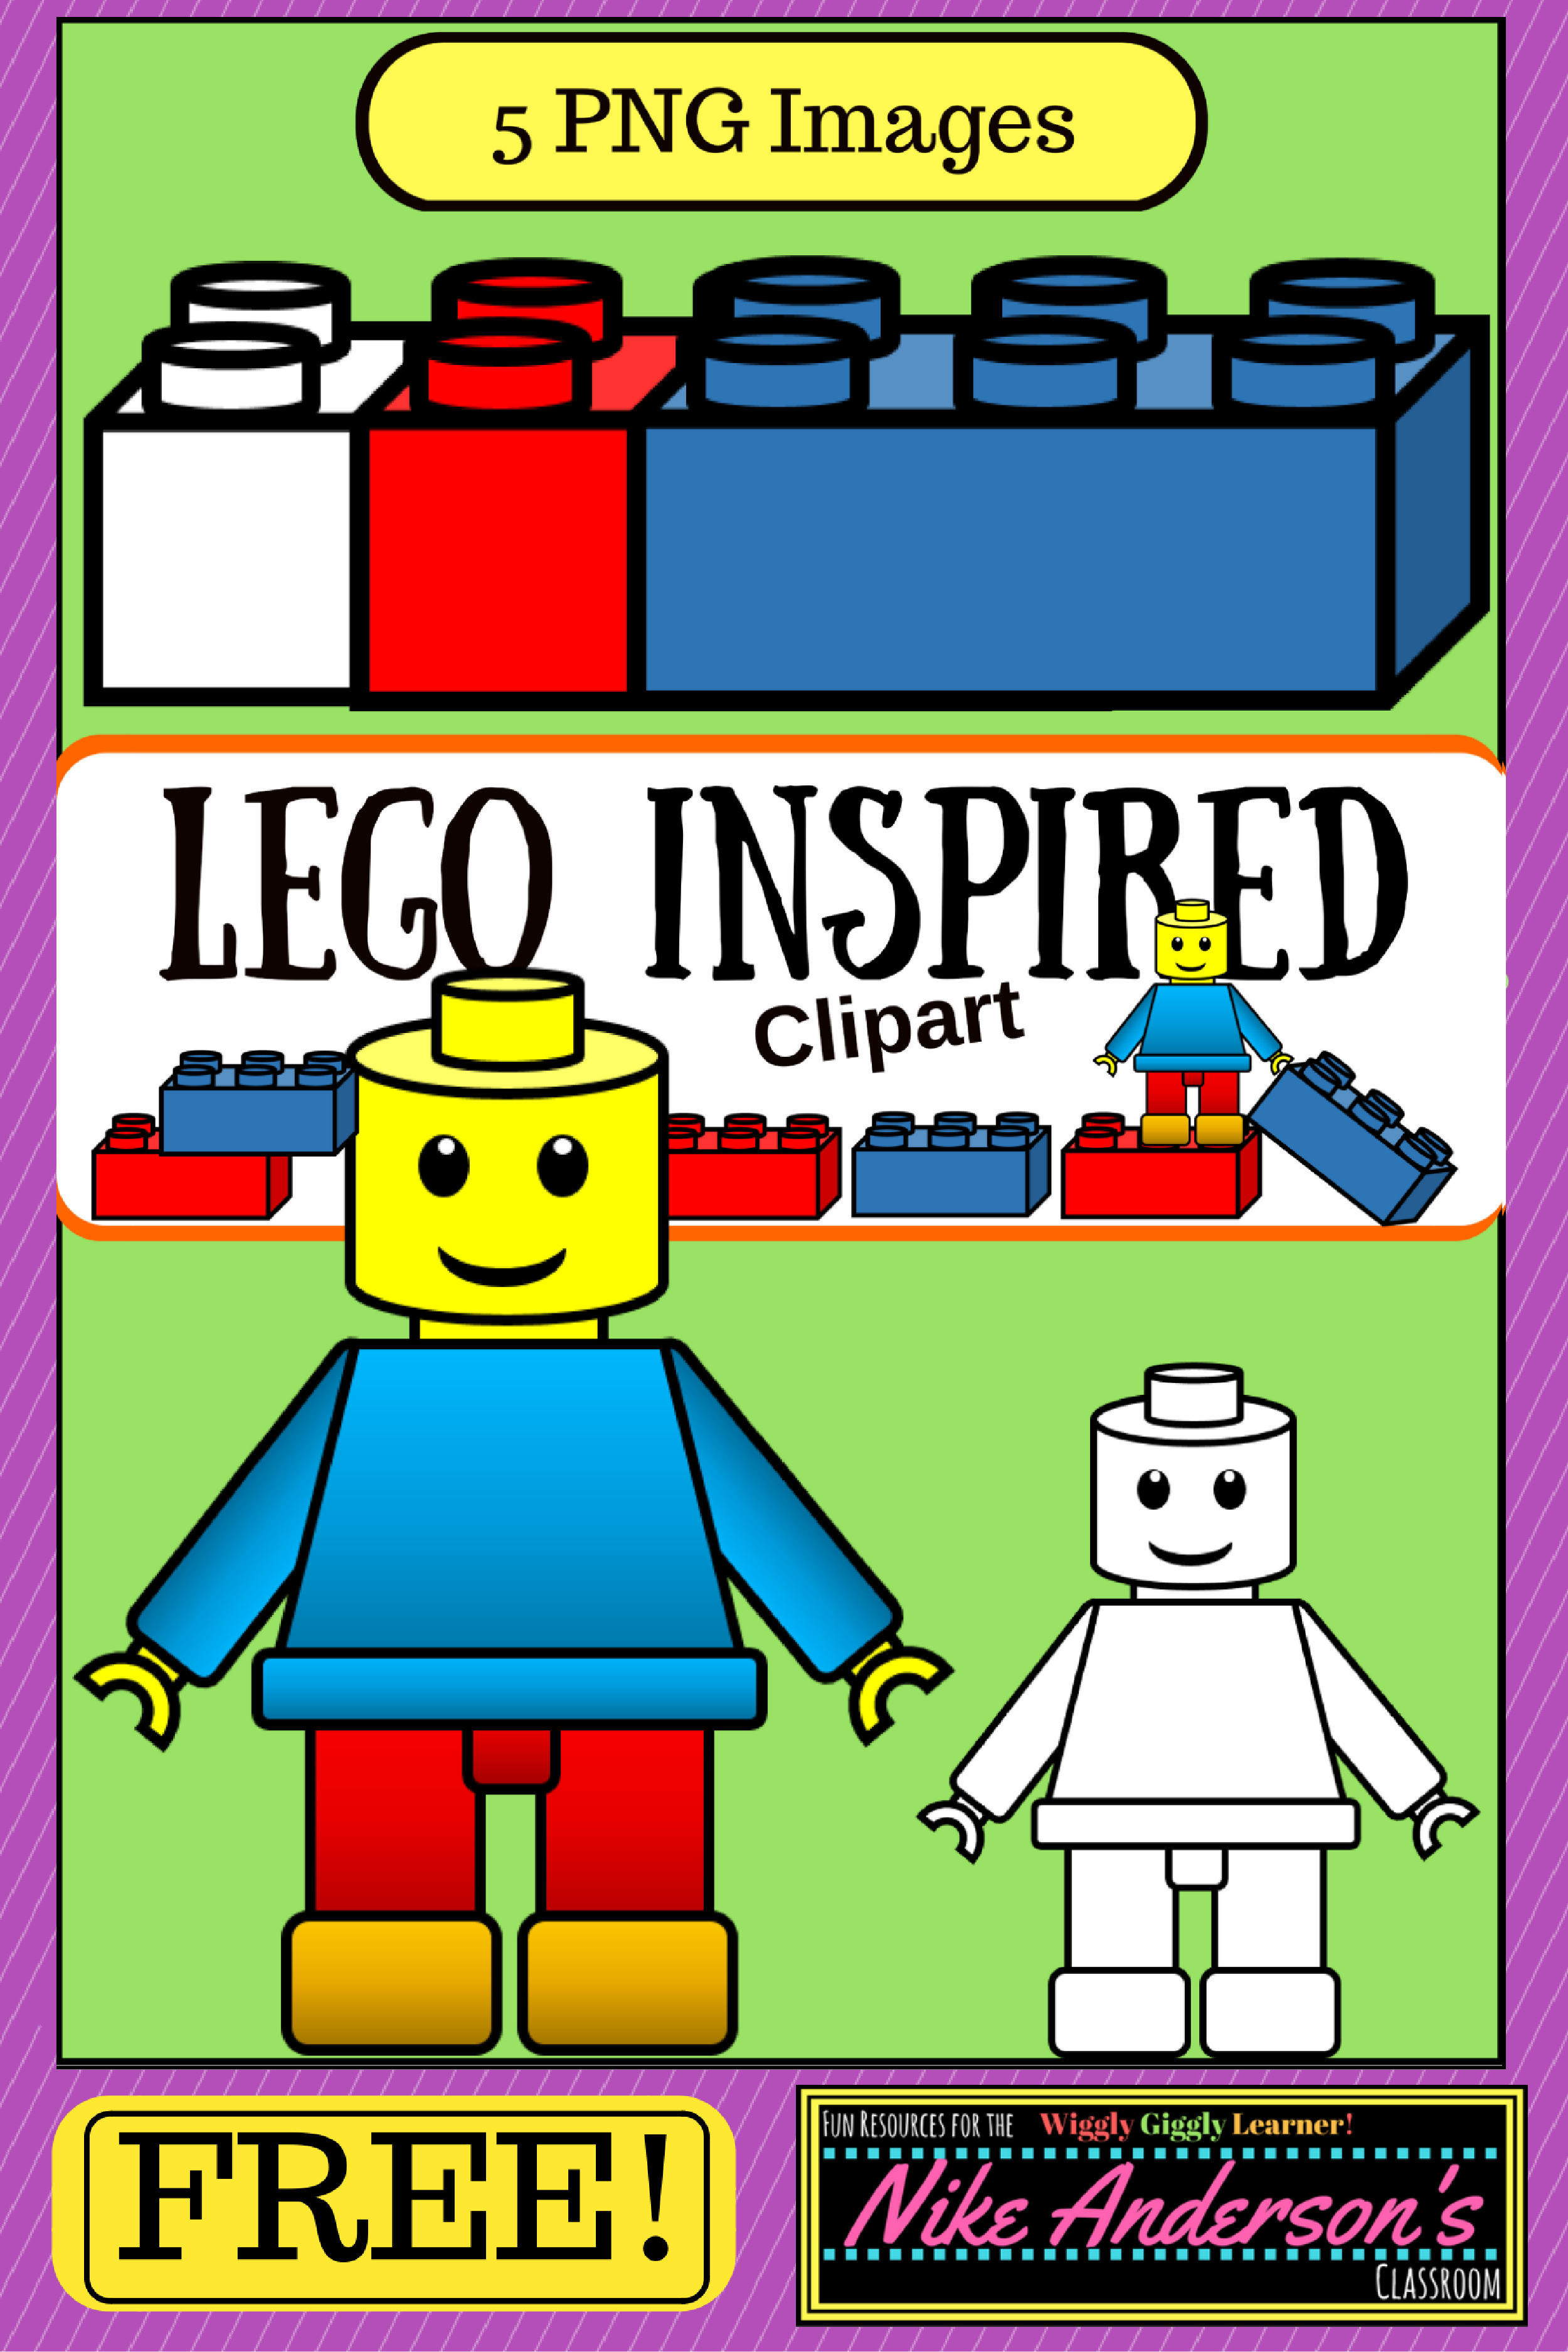 Lego intergalactic girl clipart images no background banner transparent stock LEGO Inspired KIDS Clipart   FREEBIE   Construction Play for ... banner transparent stock